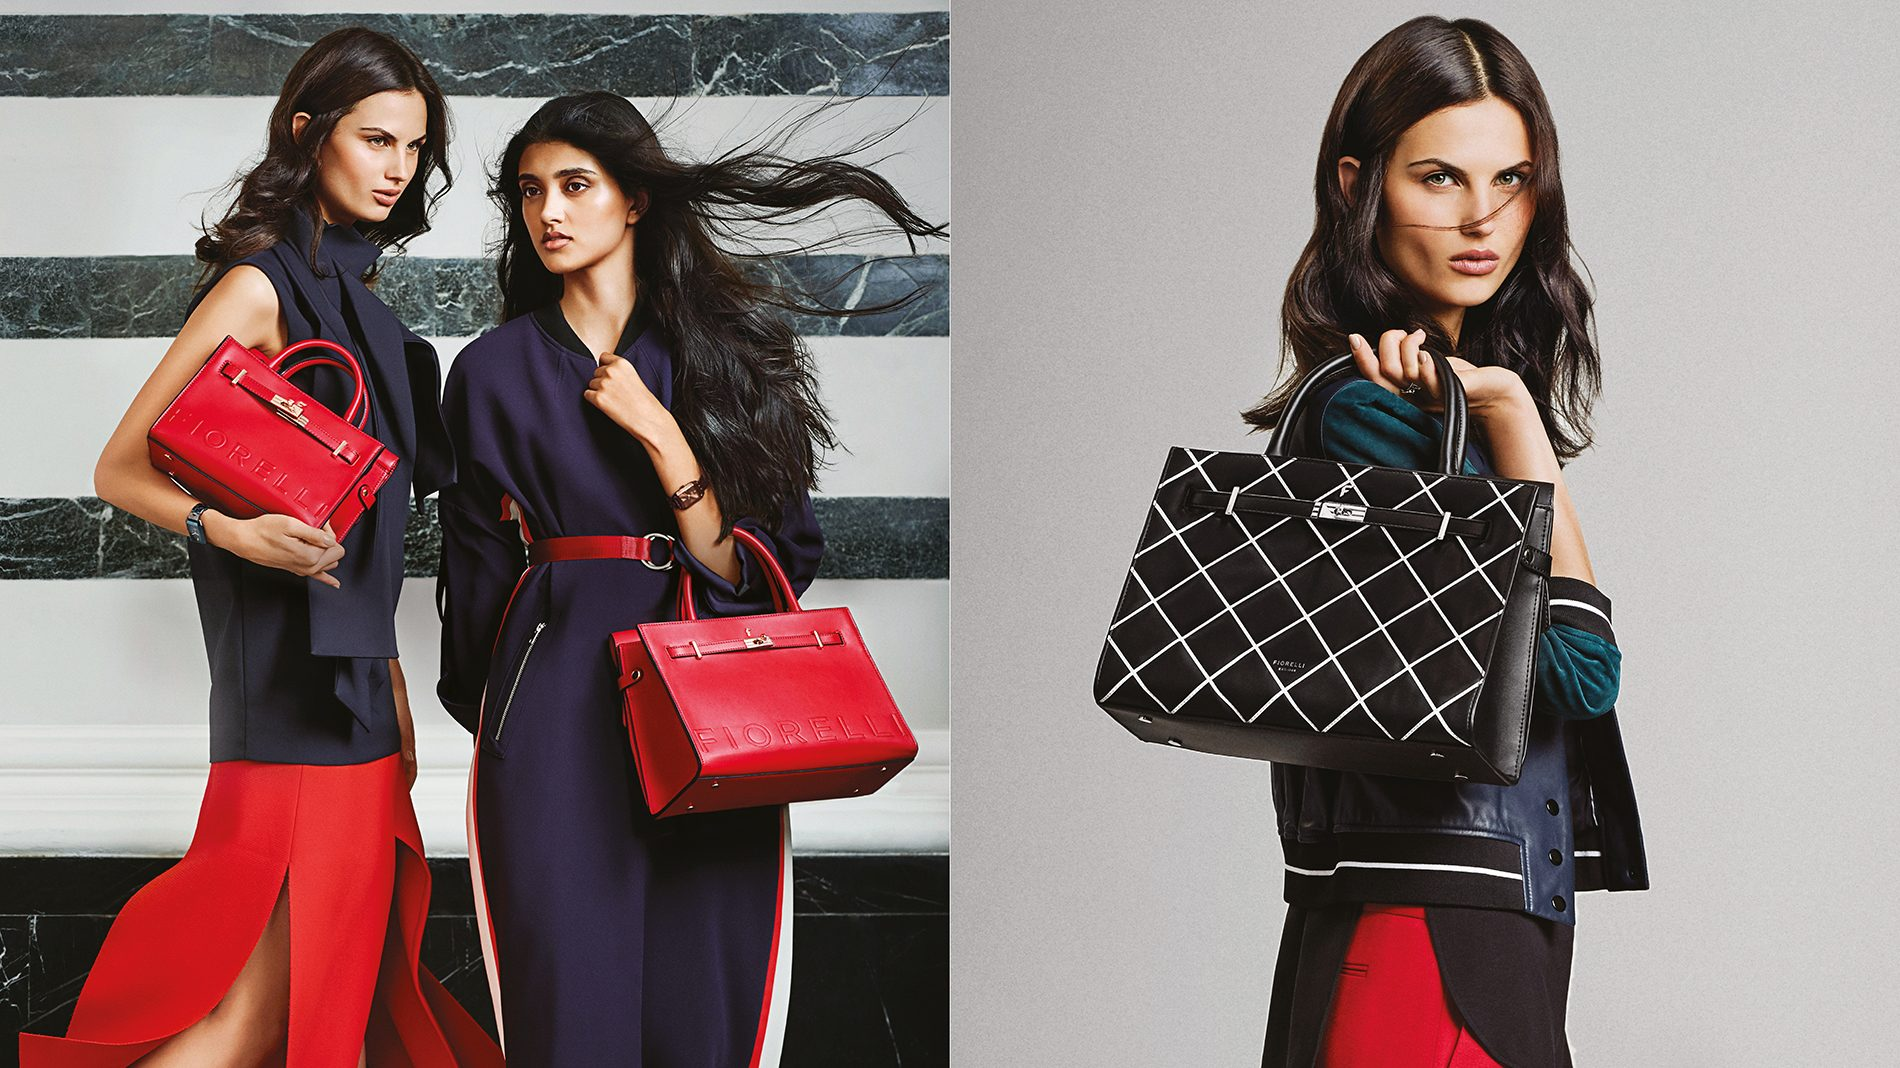 Fiorelli fashion campaign ads for handbags